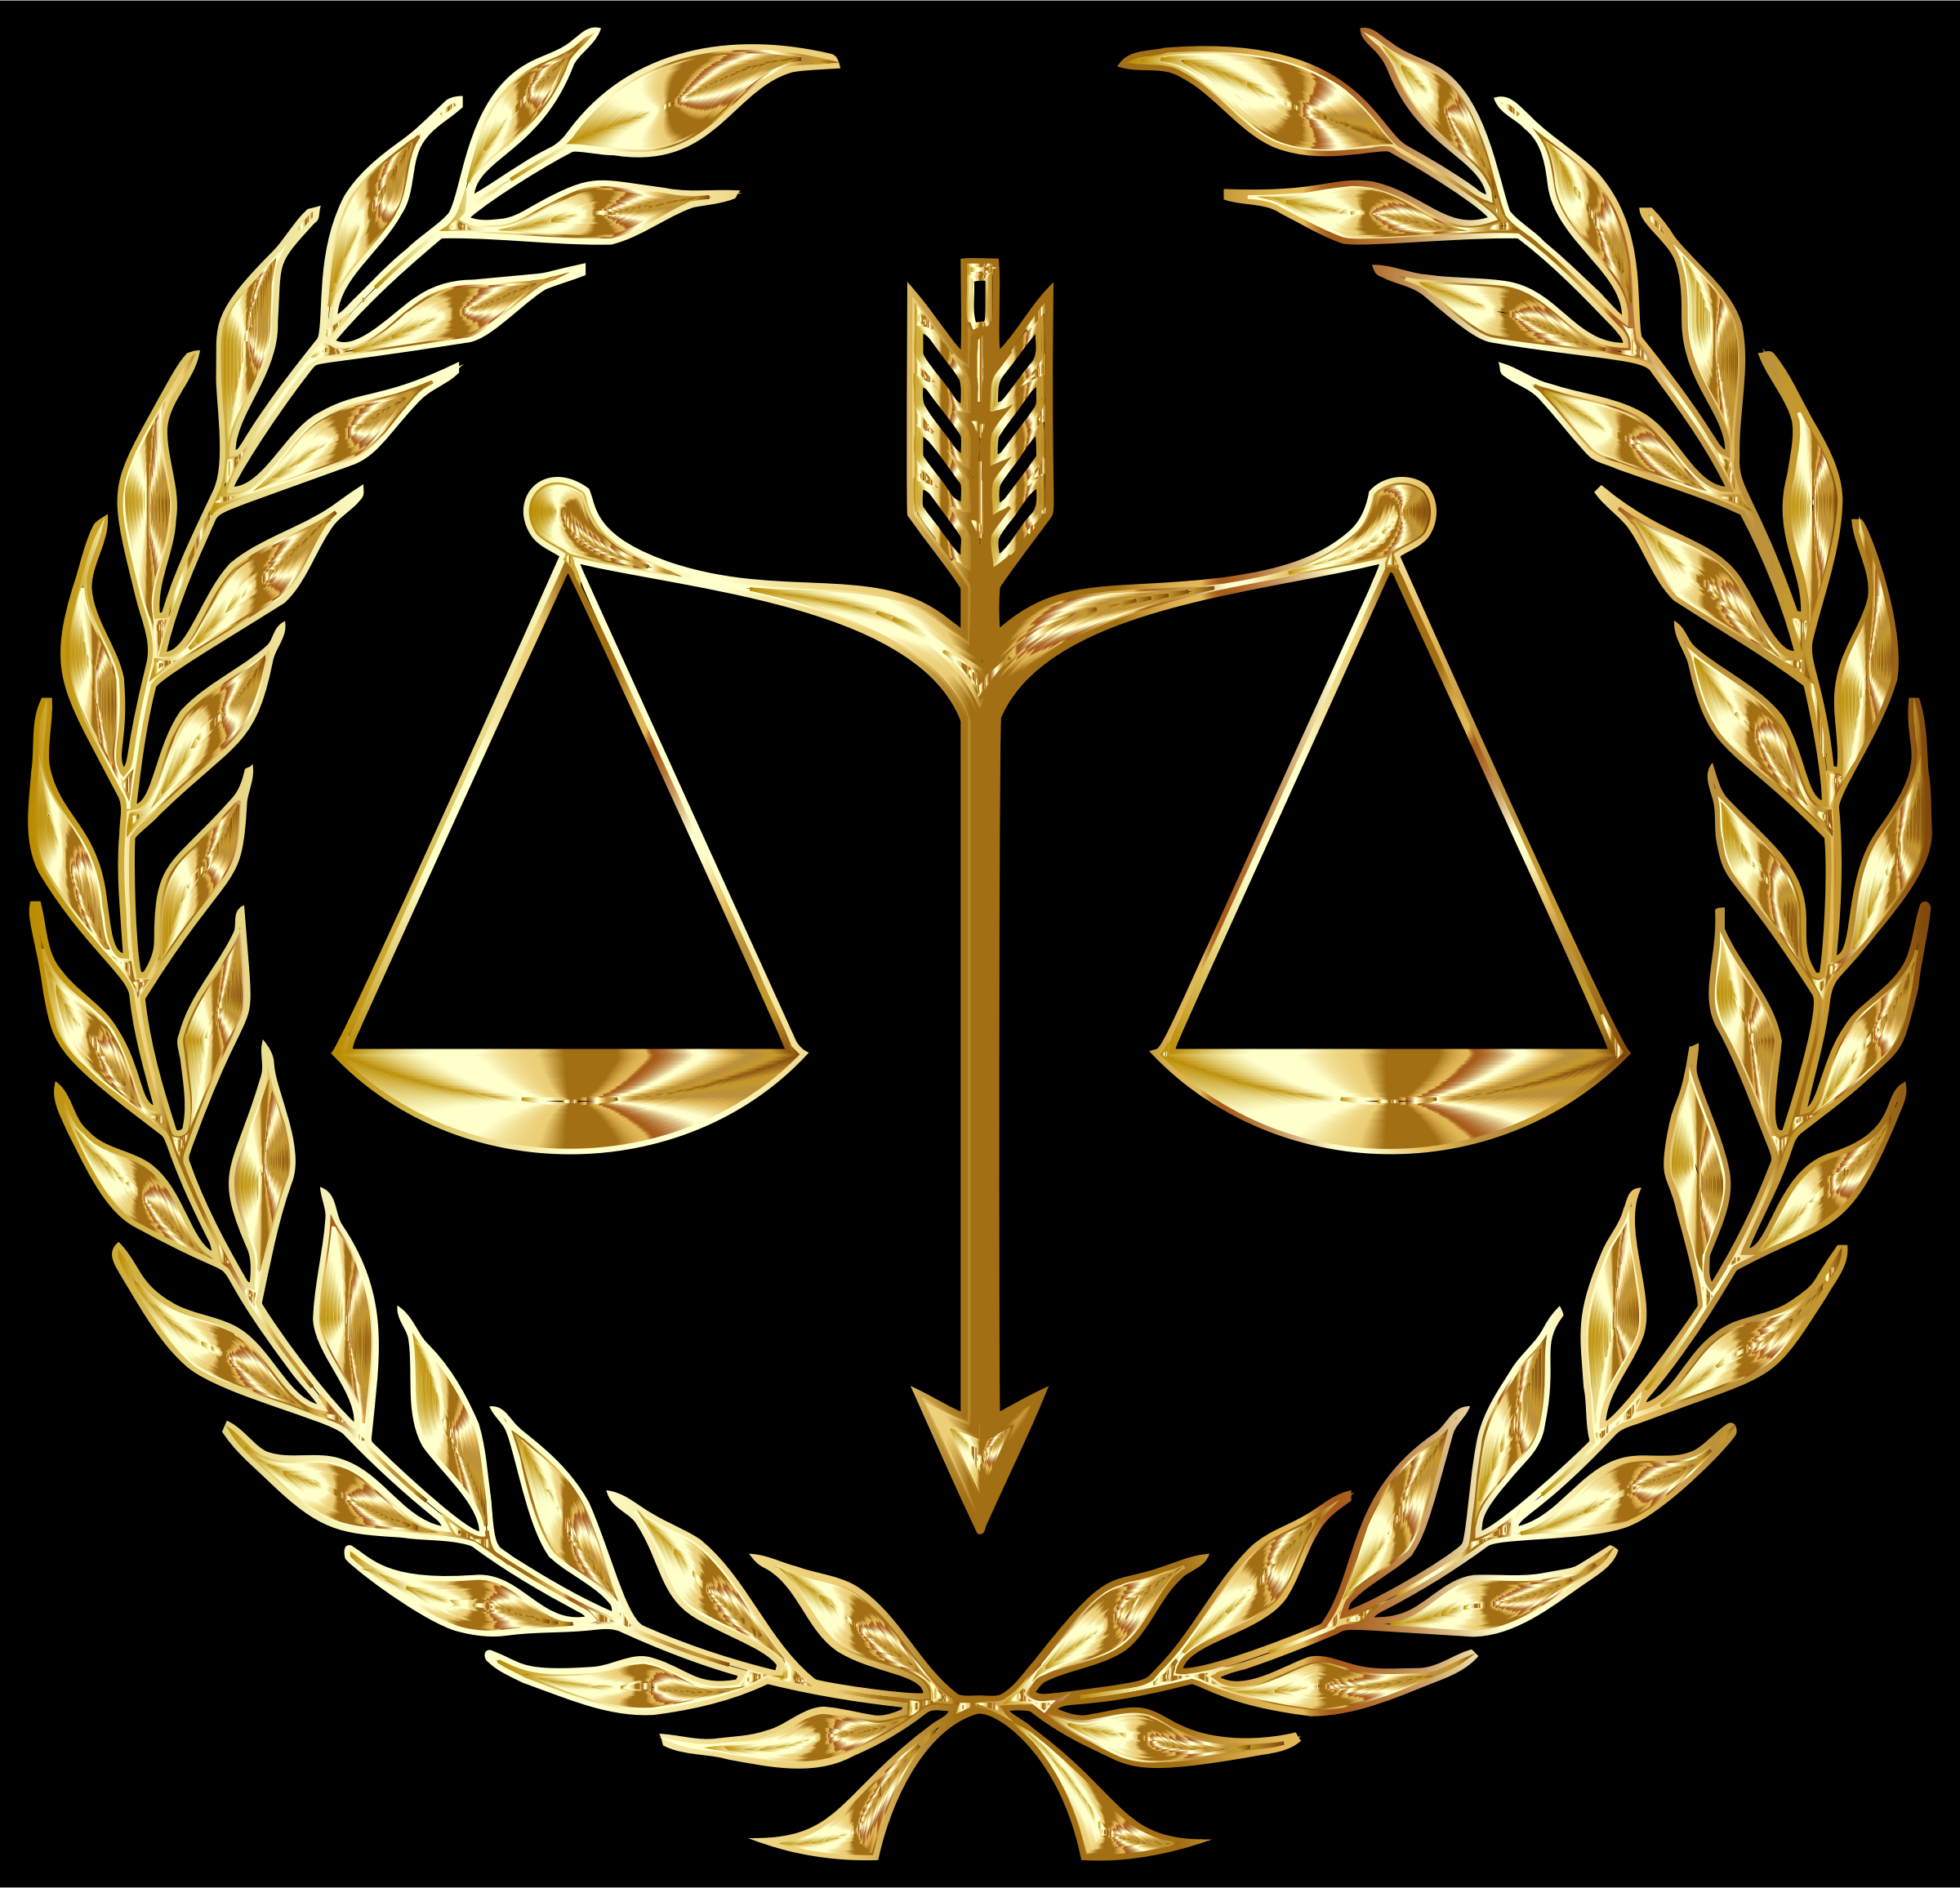 Justice Emblem Gold by GDJ